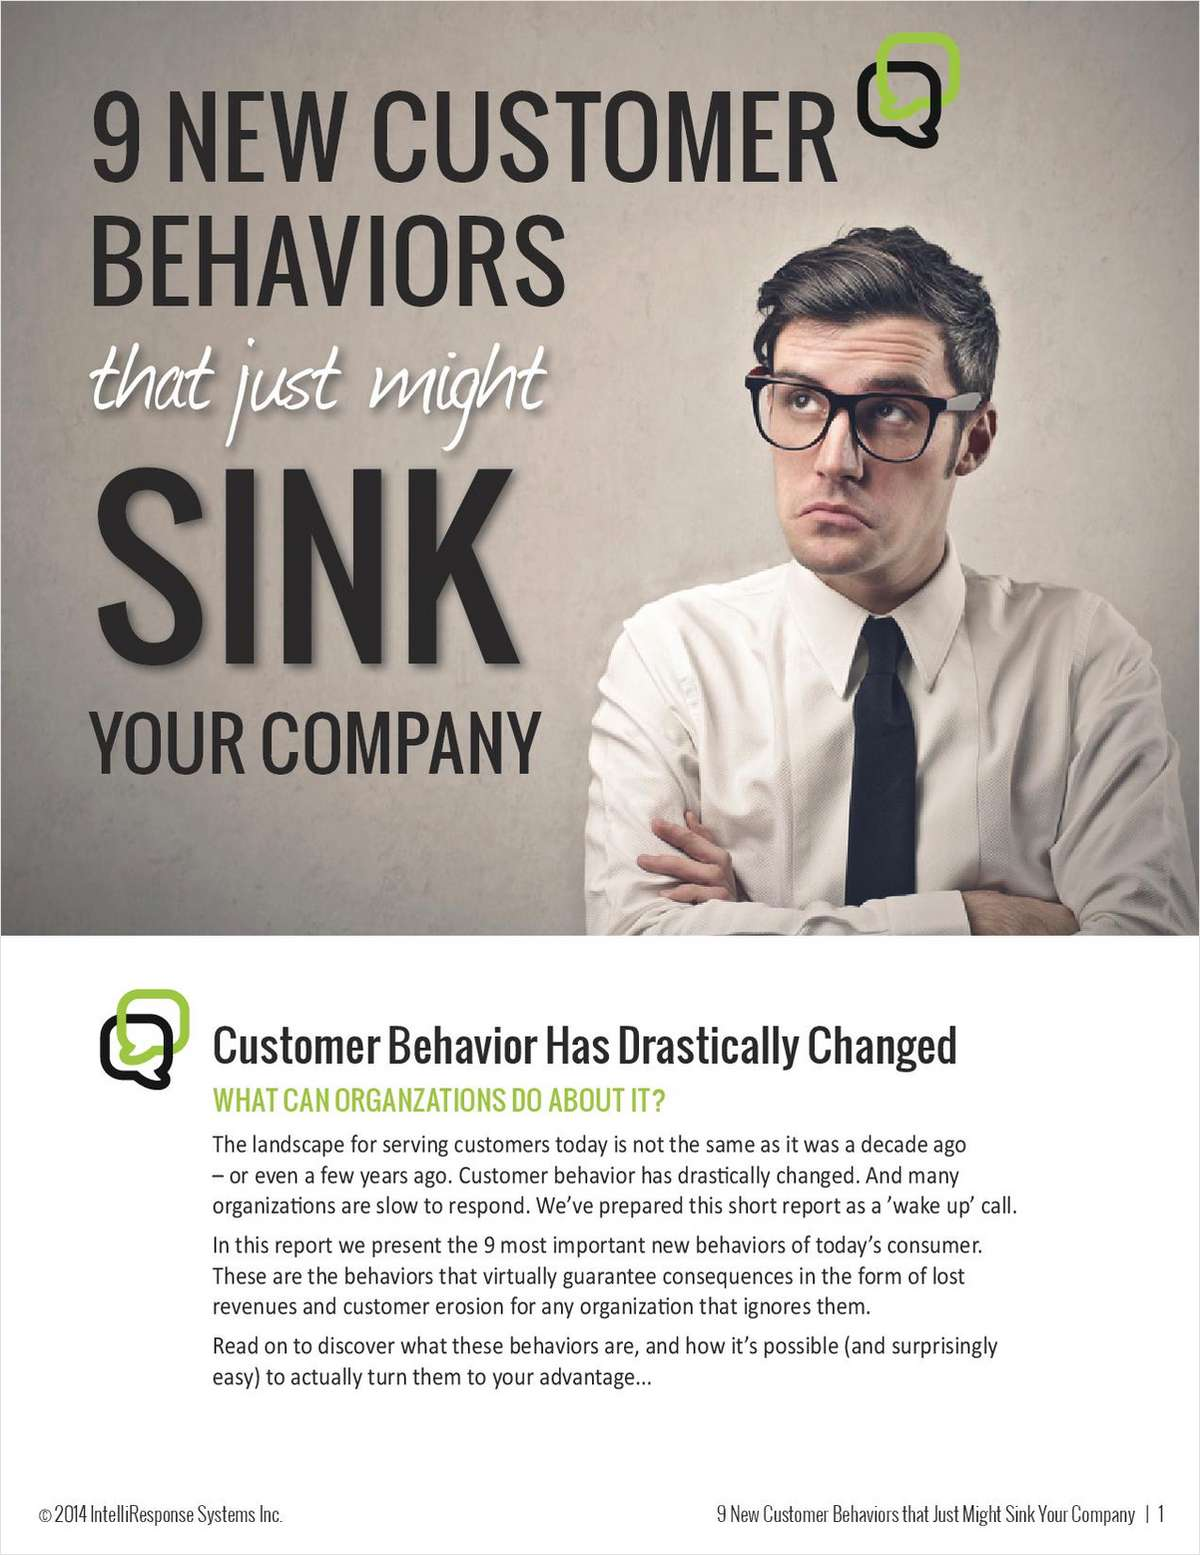 9 New Customer Behaviors that Could Sink Your Company